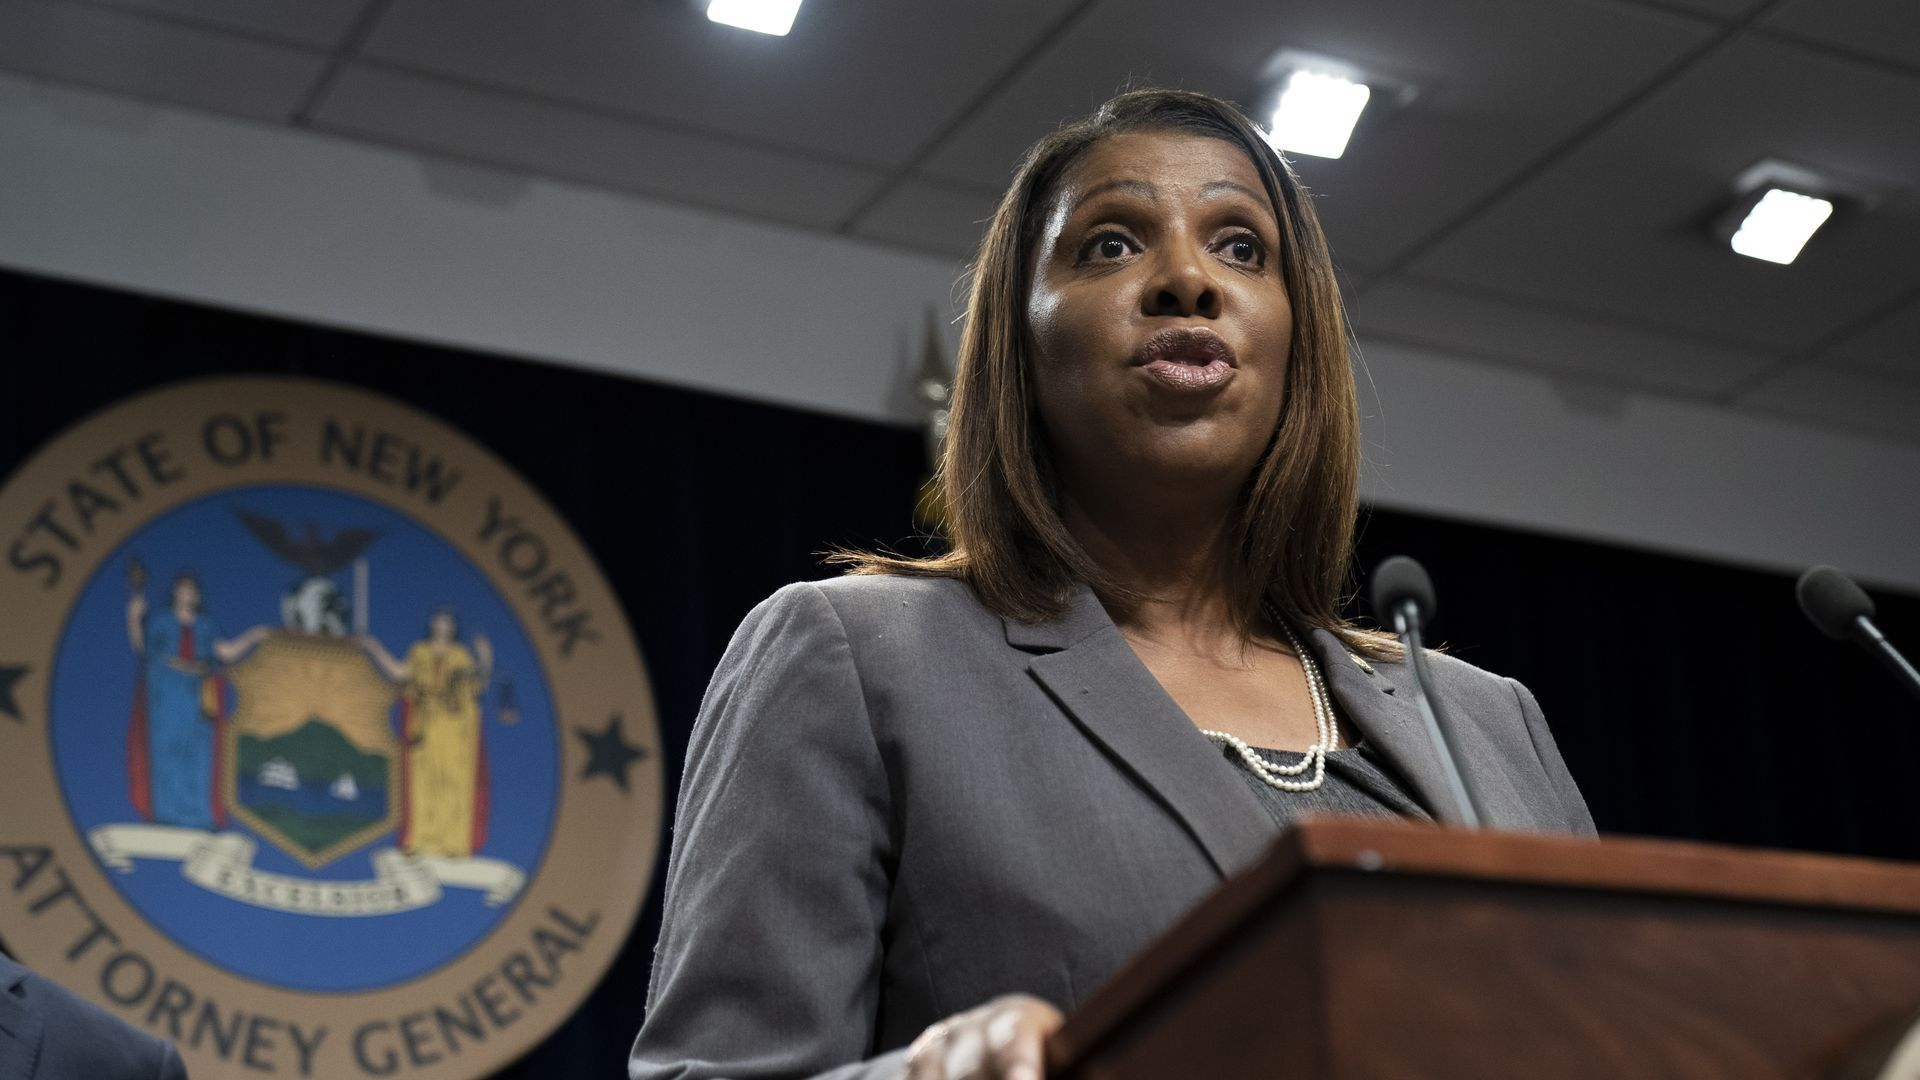 New York Attorney General Letitia James speaks at a podium